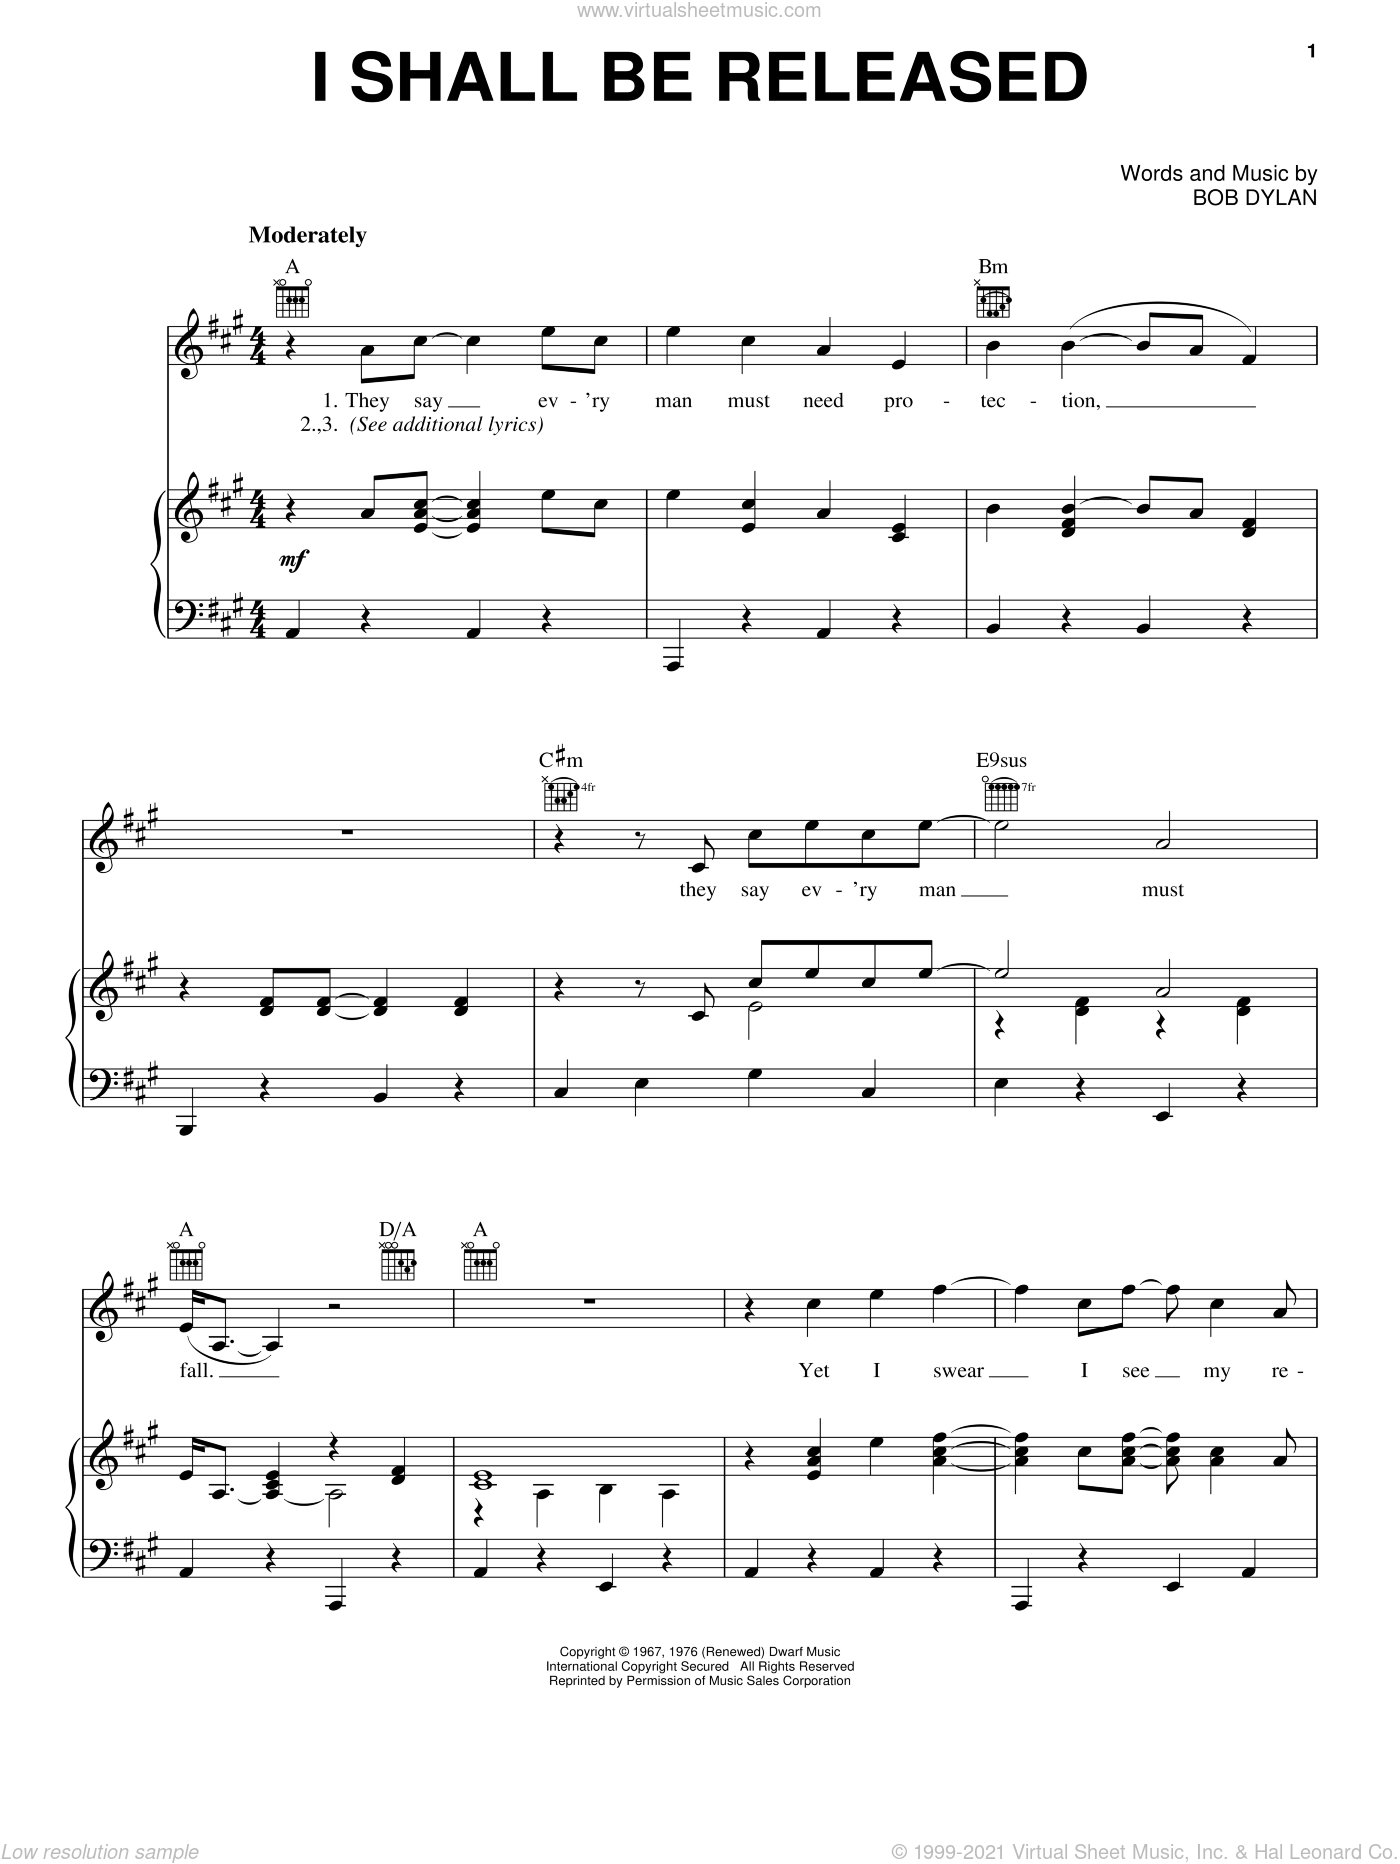 I Shall Be Released sheet music for voice, piano or guitar by Bob Dylan, intermediate. Score Image Preview.